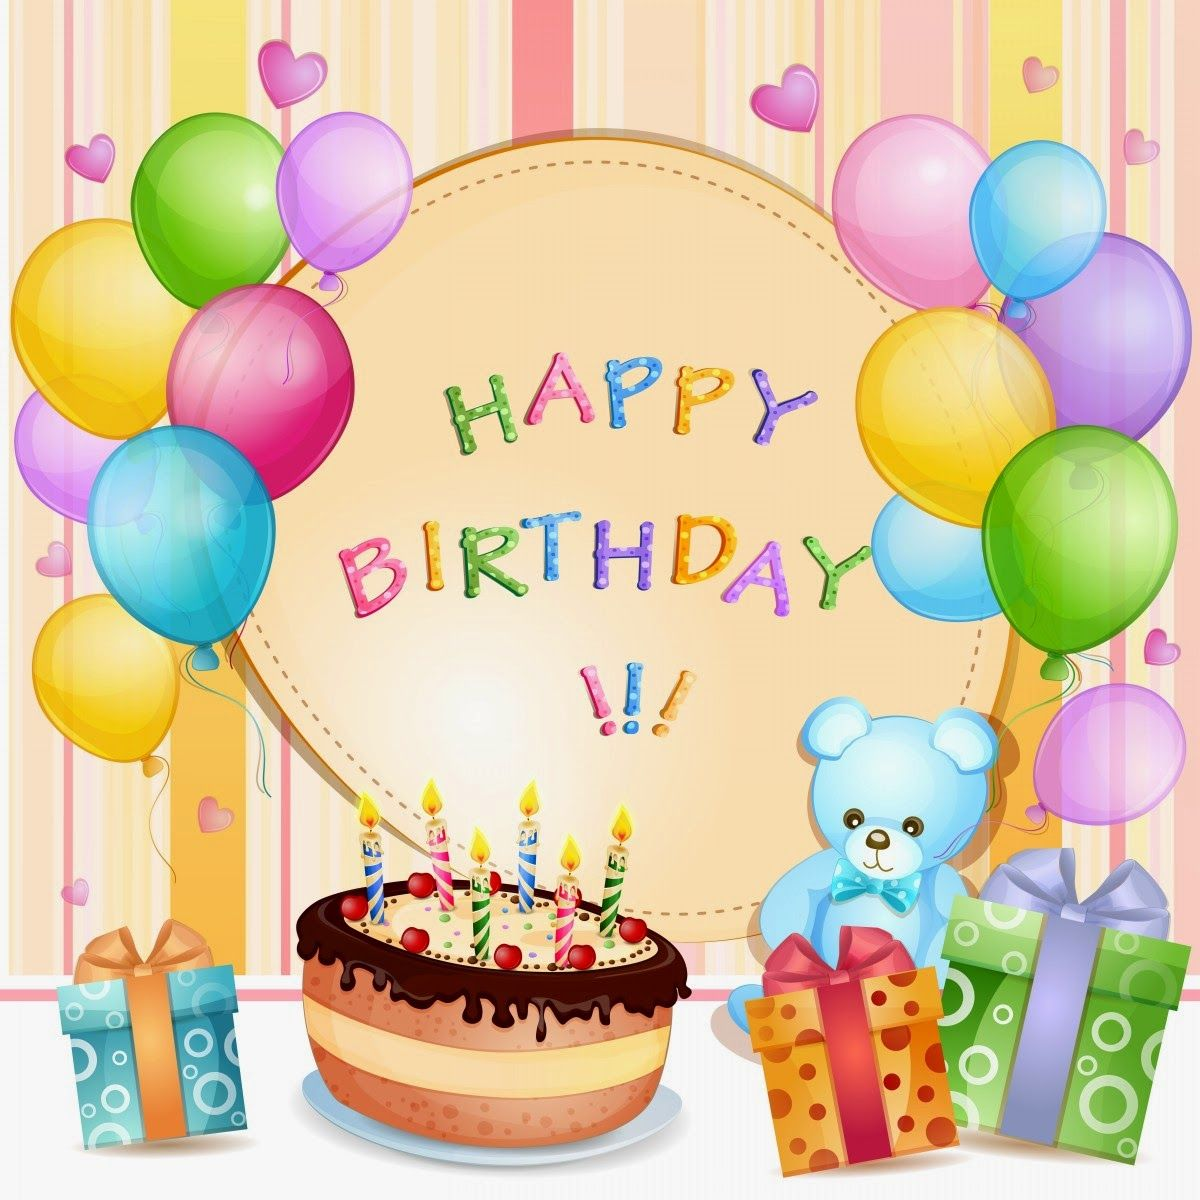 Happy Birthday Quotes Pictures Images Free Download – Live Happy Birthday Cards